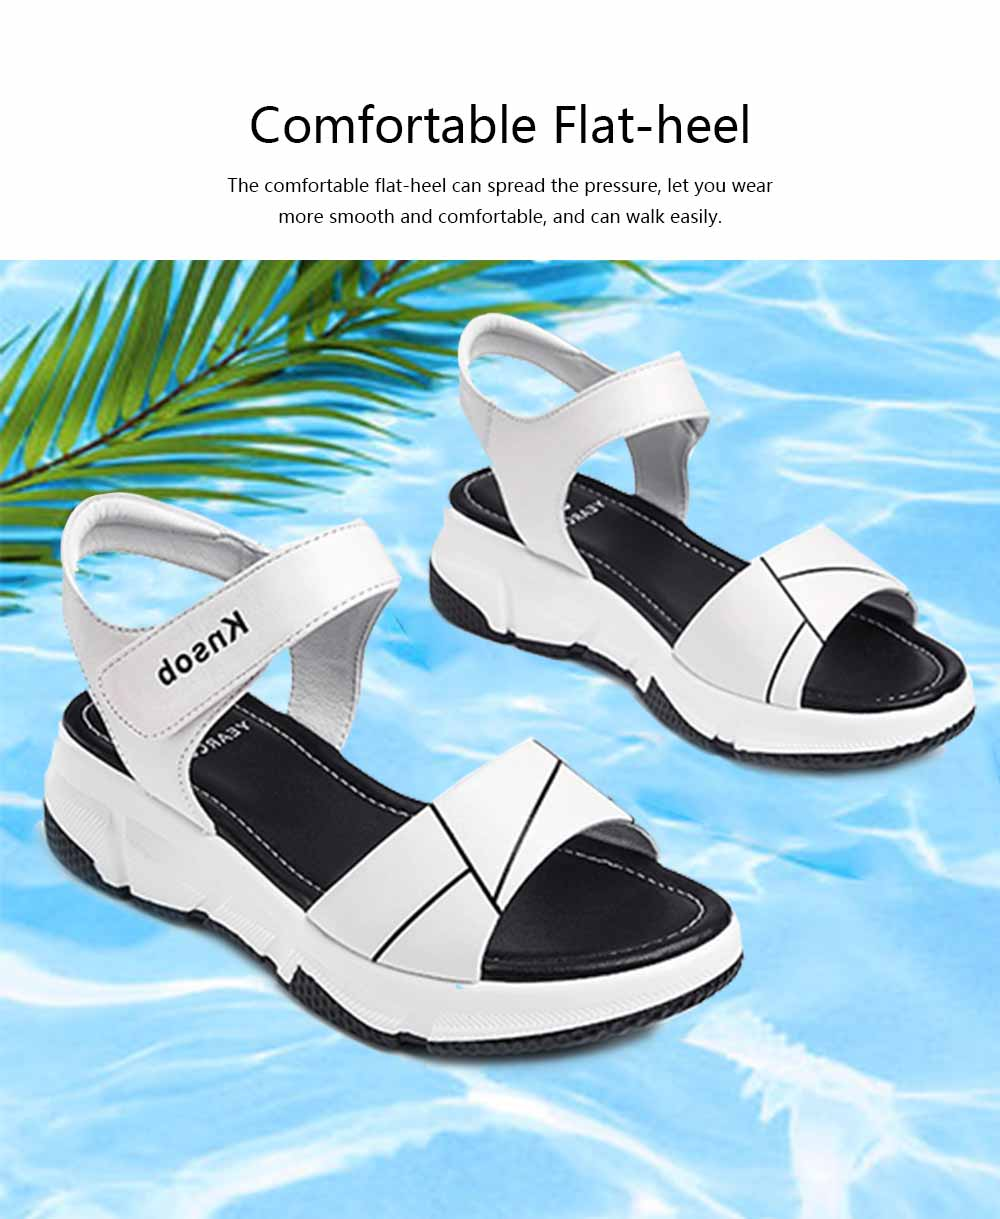 Sport Women Sandal Leather PU Material Flat-heeled Prevent Wear Foot Adjustable Velcro for Girl Shoes Summer 1